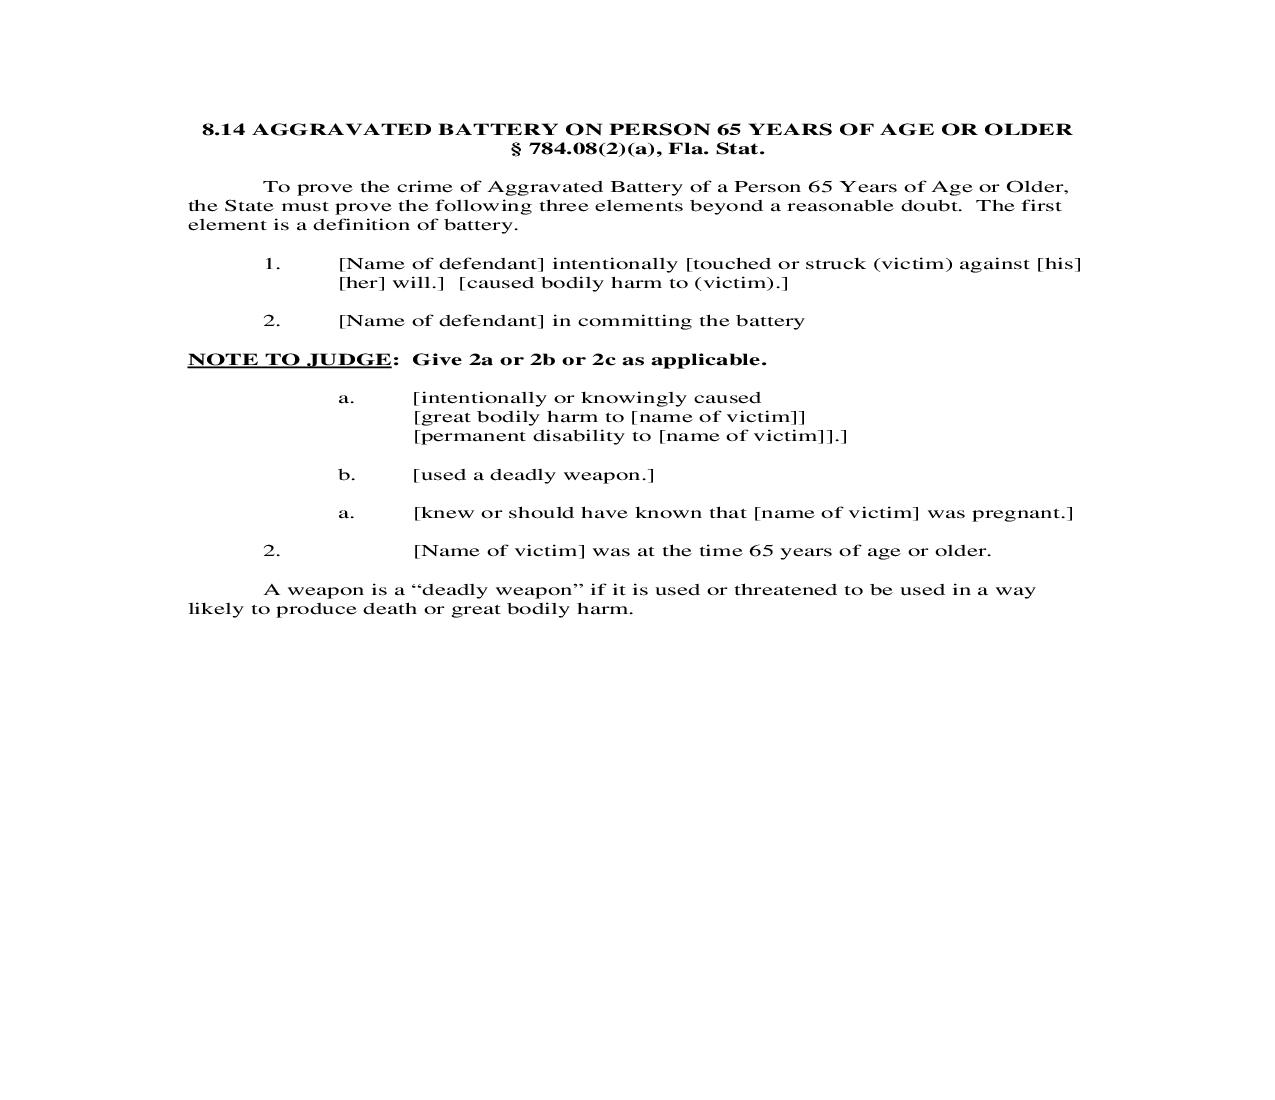 8.14. Aggravated Battery On Person 65 Years Of Age Or Older | Pdf Doc Docx | Florida_JI